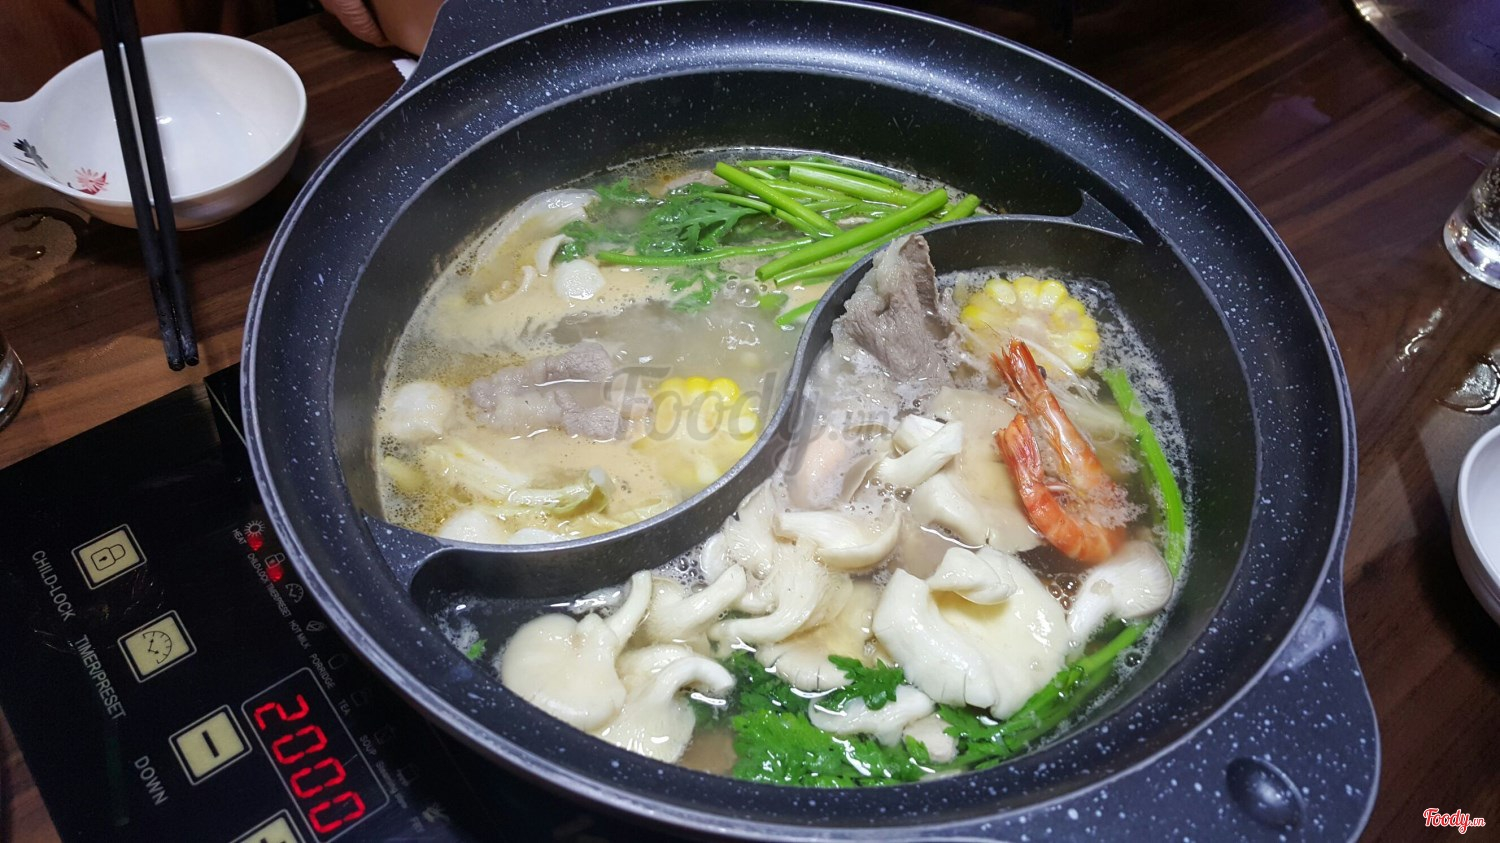 nha-hang-choice-hotpot-sai-gon